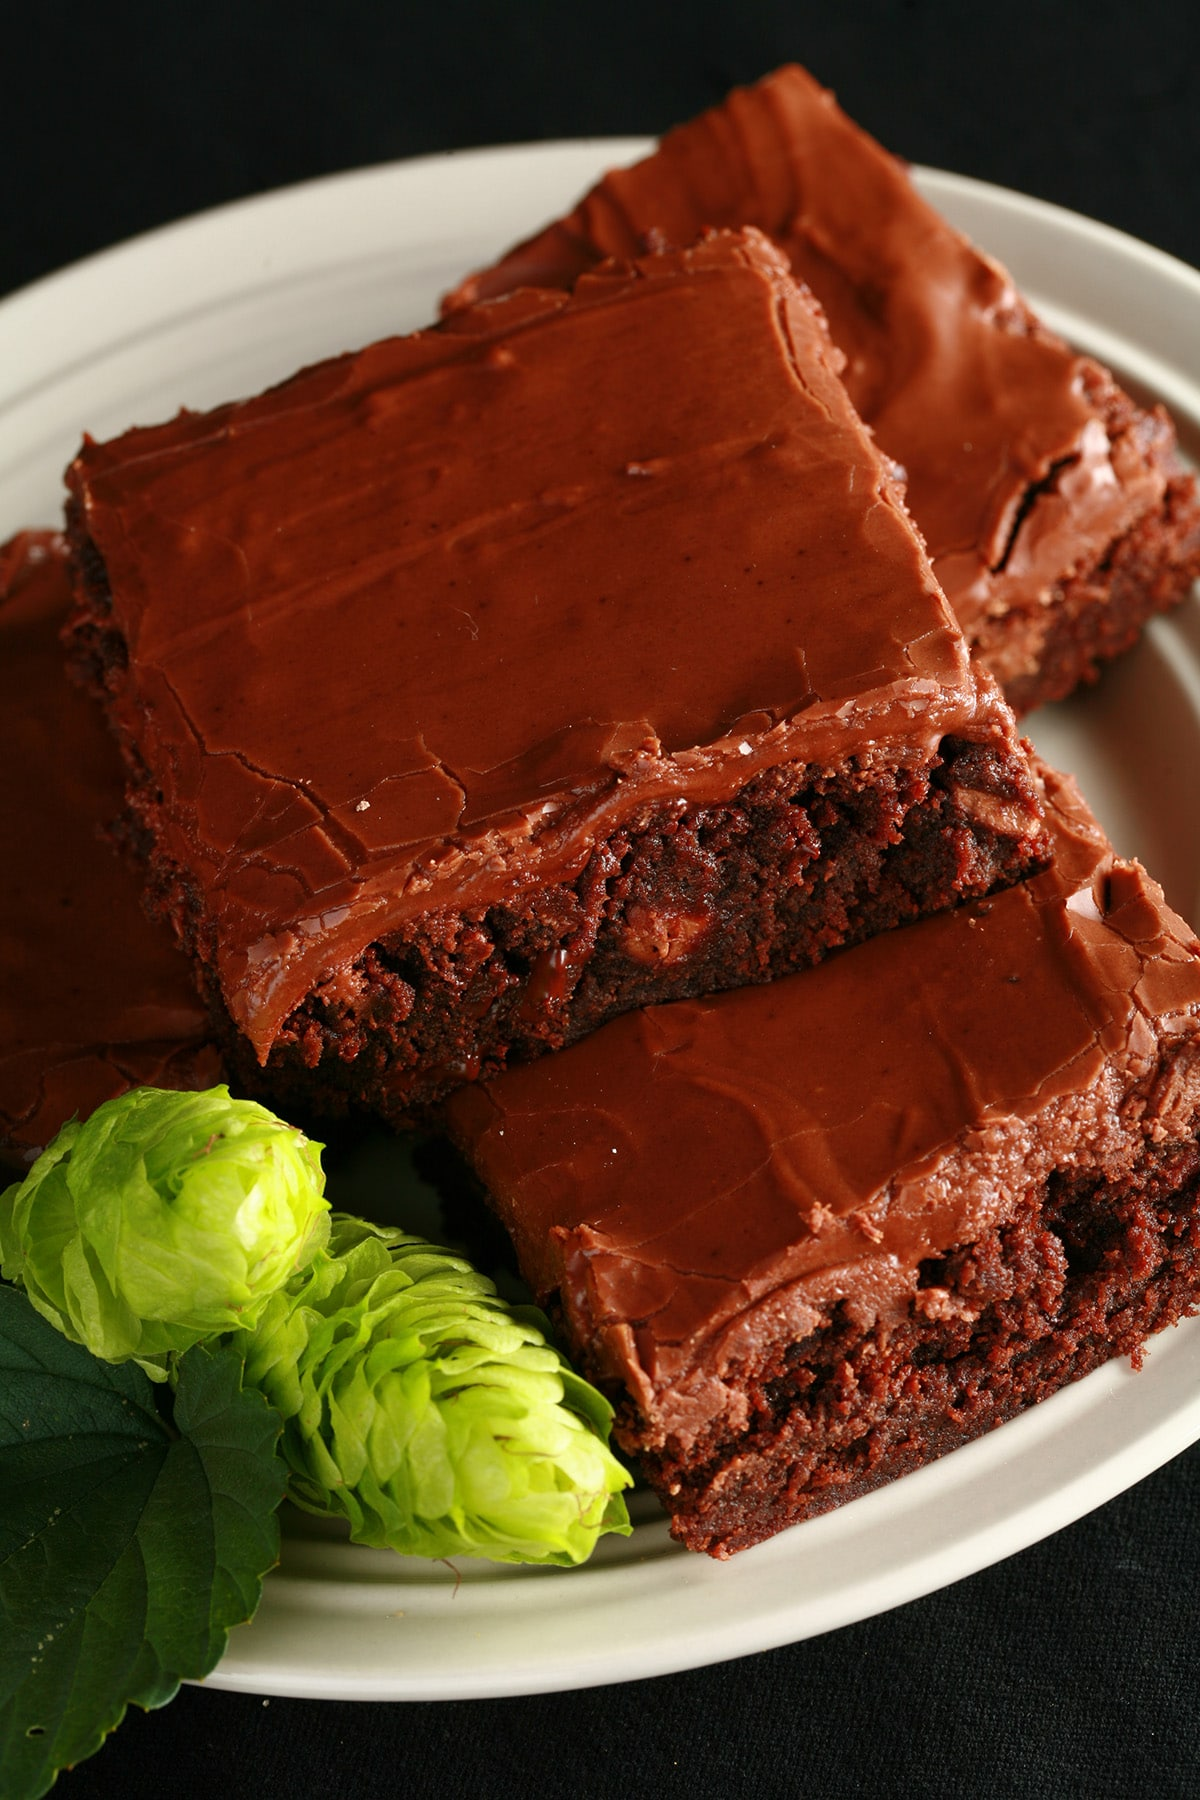 A small stack of dark, , rich, gooey looking chocolate hop brownies. The small white plate is garnished with 2 fresh hop flowers.